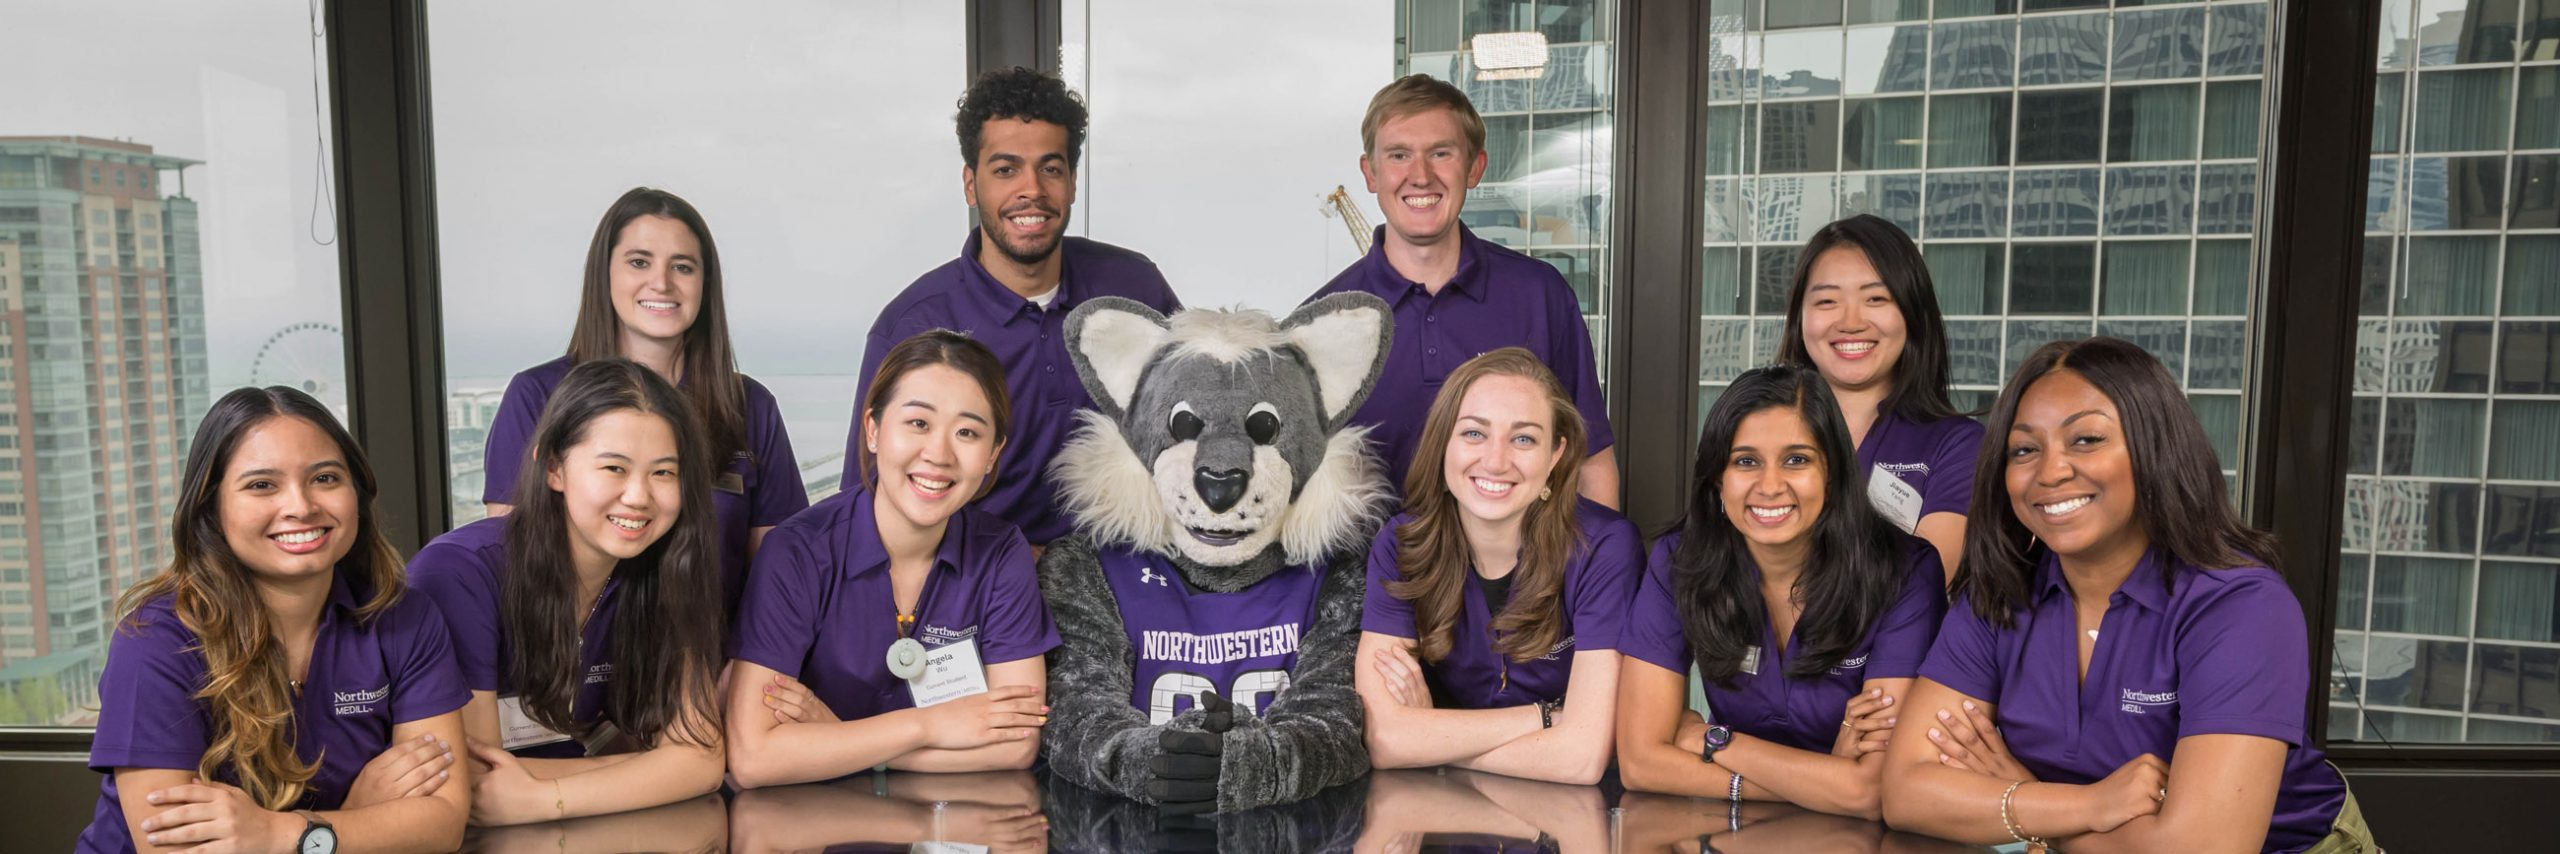 Students pose for a photo. They are wearing purple shirts with the Northwestern Medill logo on them and sitting with the Willie the Wildcat mascot.